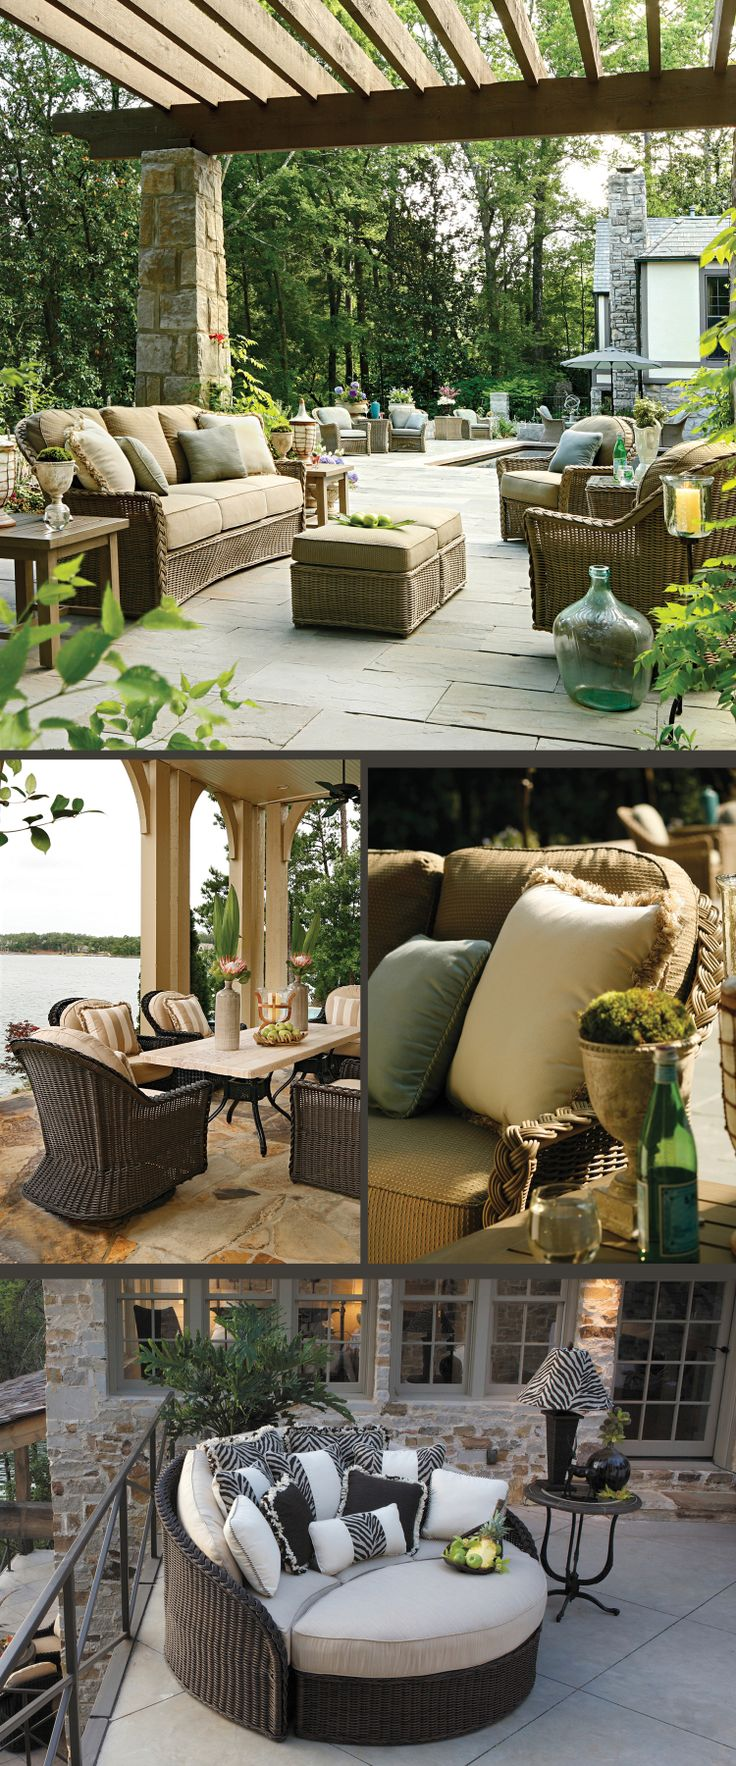 Best Images About Outdoor Fabrics On Pinterest - Summer classics outdoor furniture